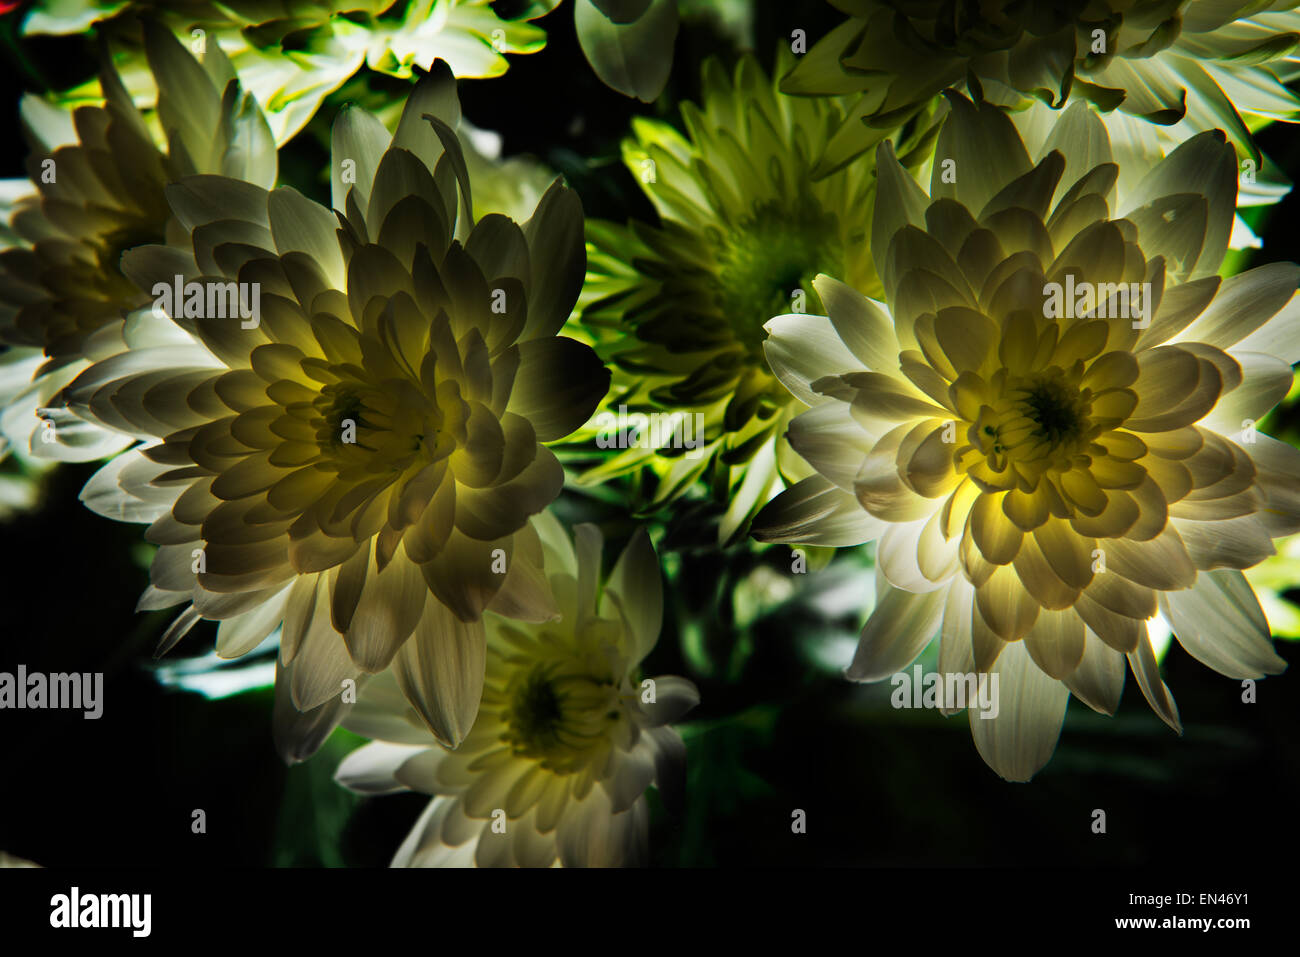 High resolution back lit dahlias that glow with tremendous texture and detail. Stock Photo